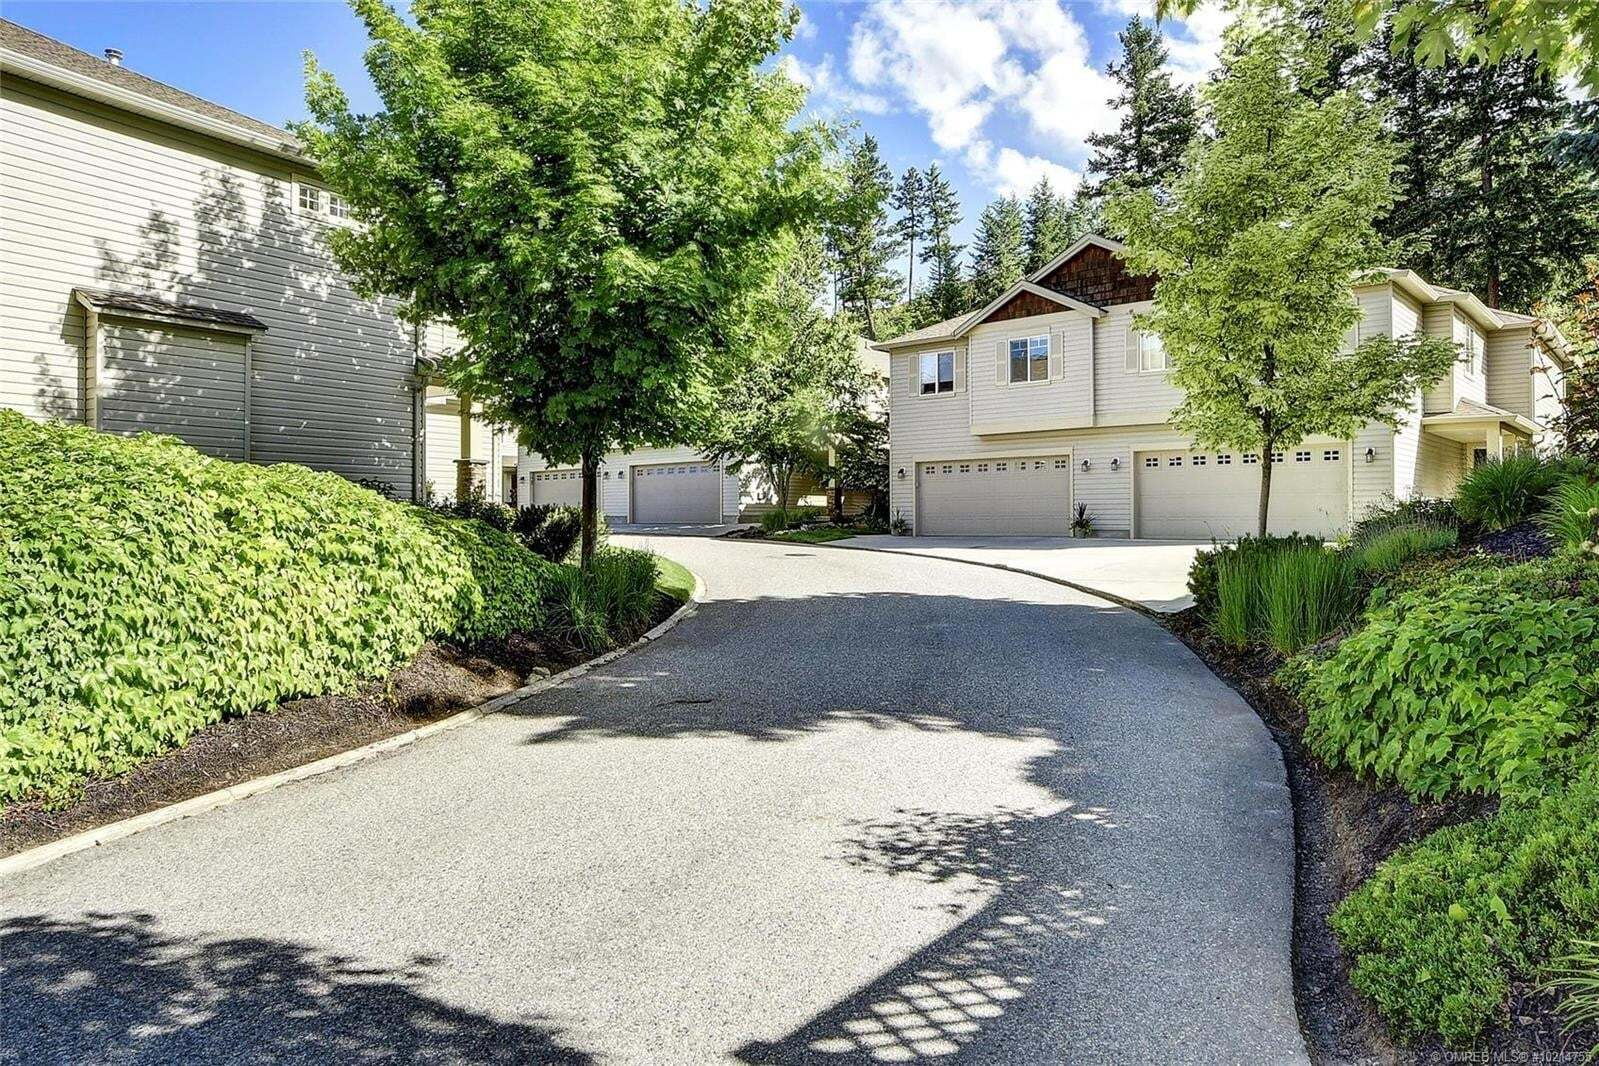 Townhouse for sale at 2175 Shannon Ridge Dr Unit 2 West Kelowna British Columbia - MLS: 10214755